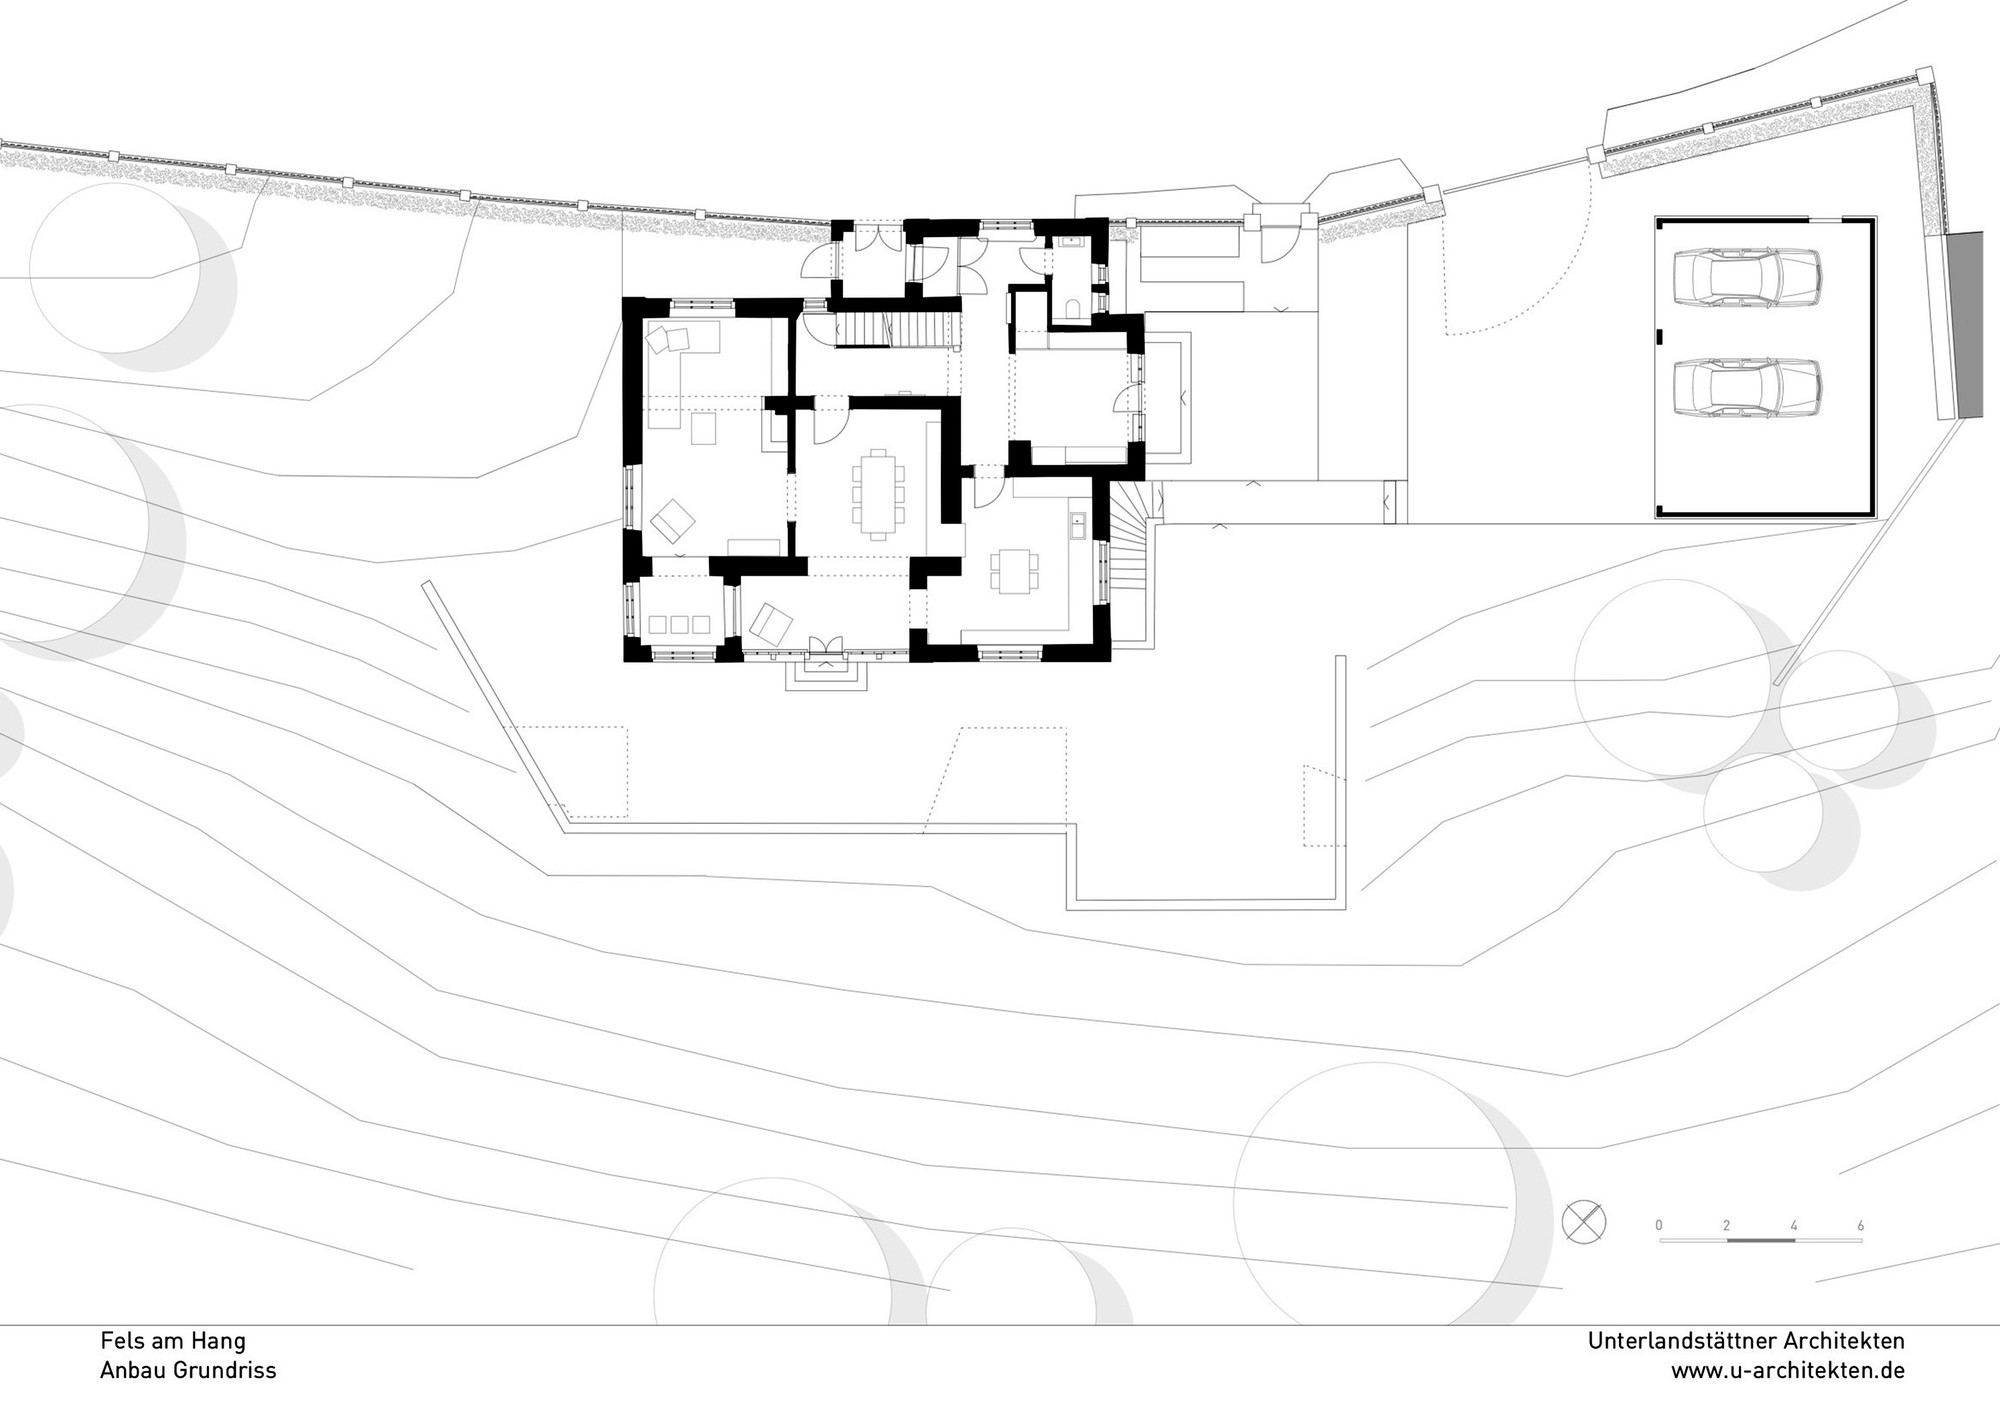 rock on a slope unterlandstttner architekten 16 19 floor plan - Floor Plan On Line